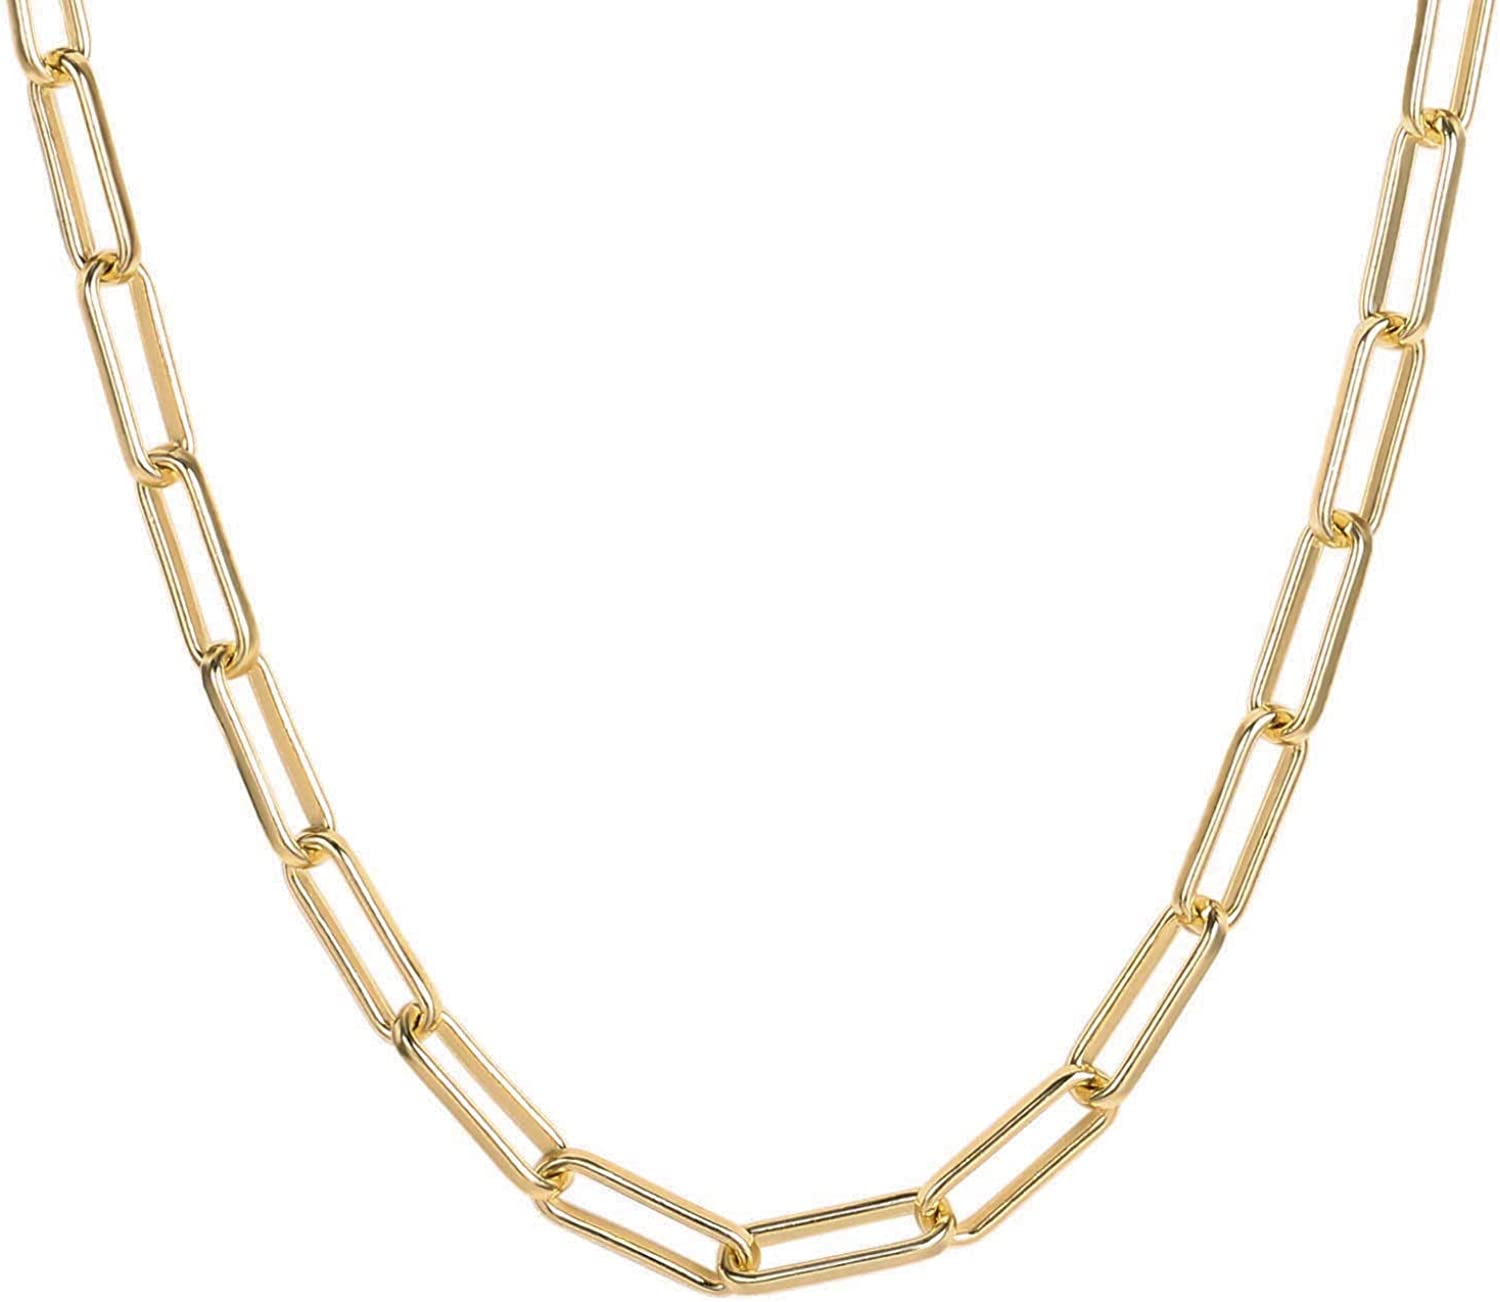 Fettero Geometric Necklace Gold Triangle Spike Pendant Dainty Paperclip Chain Long 14K Gold Plated Minimalist Simple Boho Hypoallergenic Jewelry Gift for Women Men